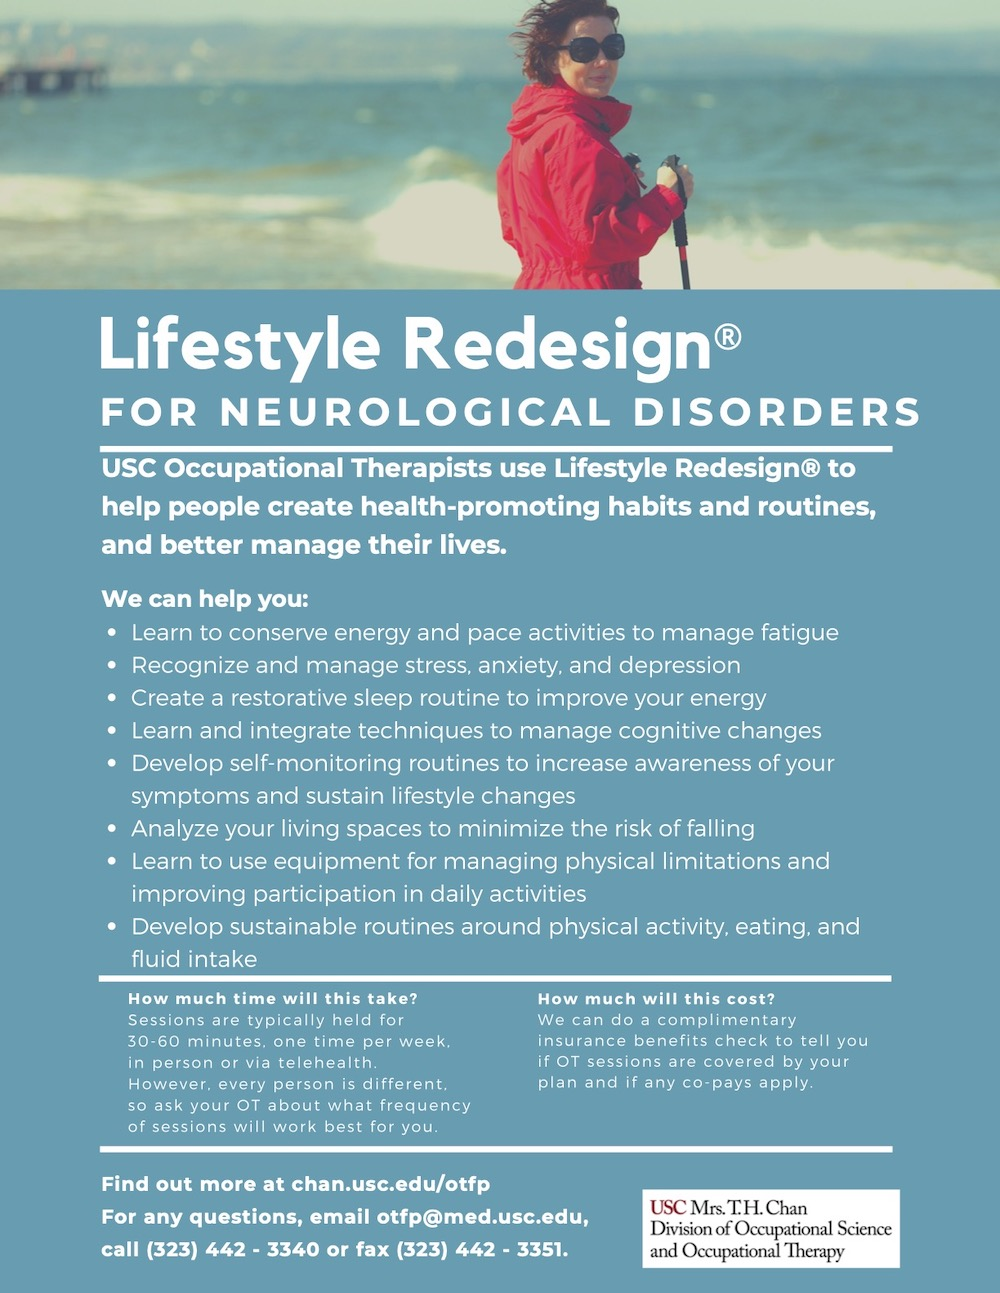 Lifestyle Redesign for Neurological Disorders